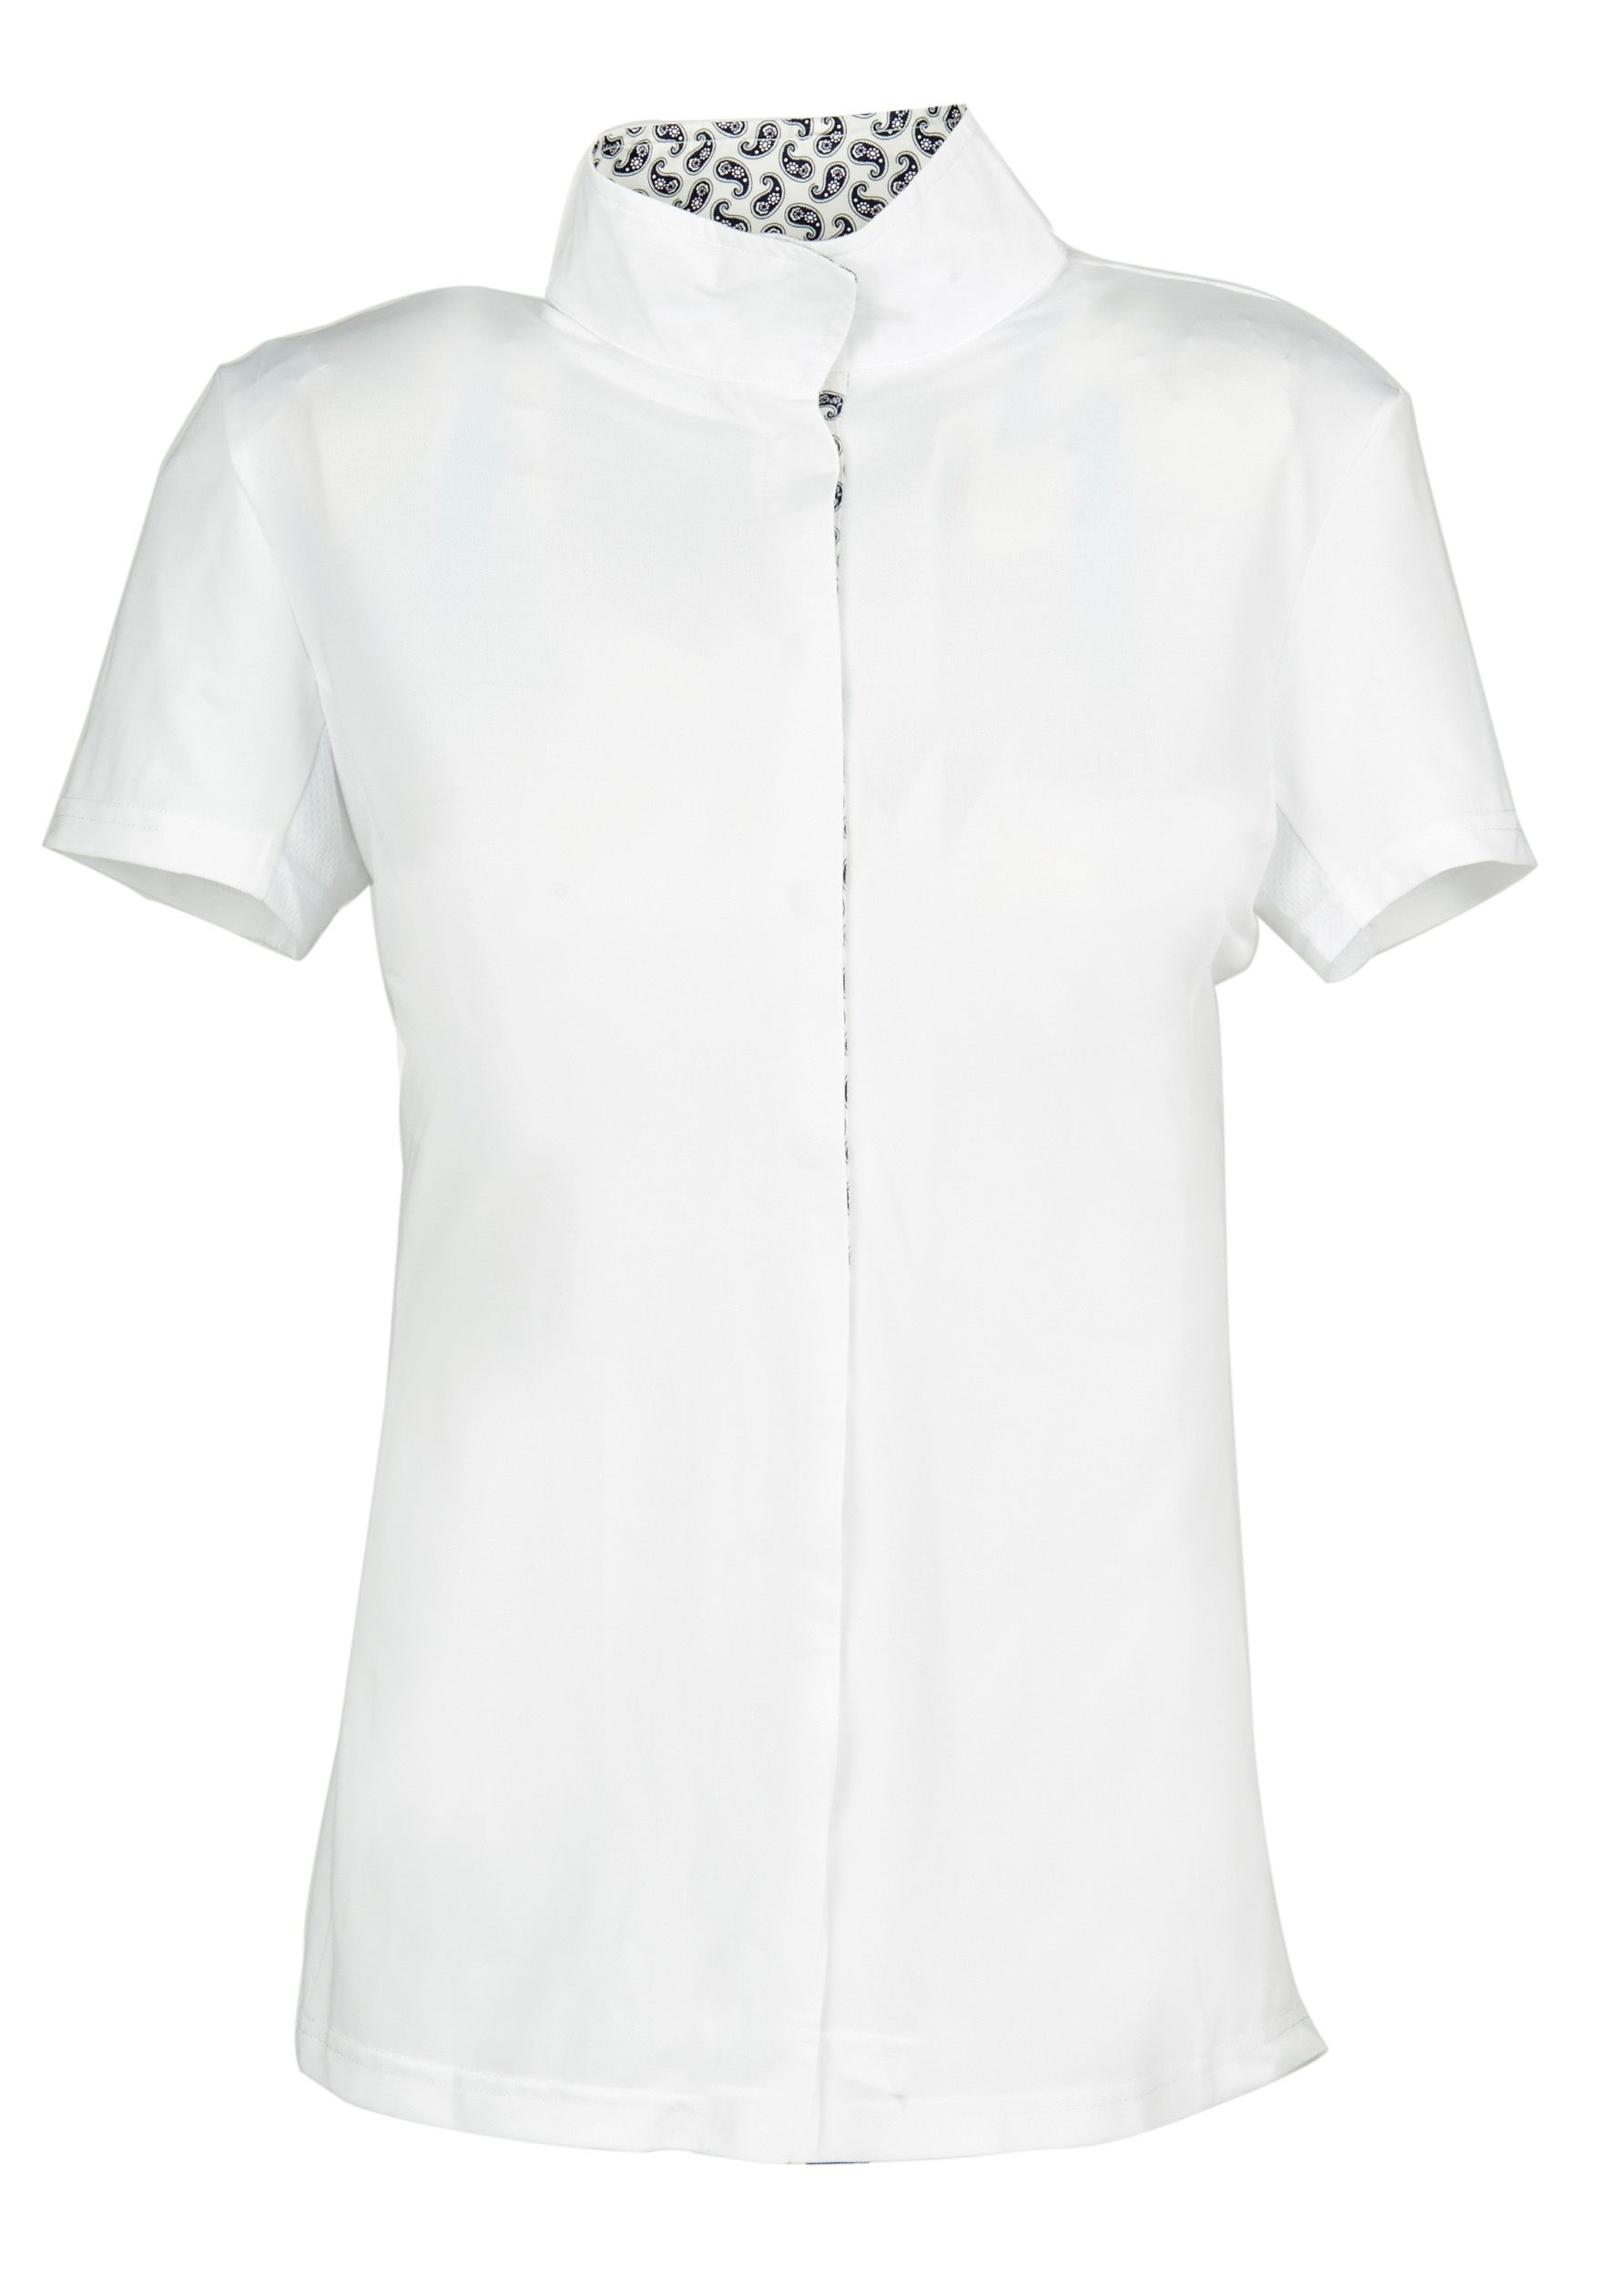 Dublin Coolmax Show Shirt - Ladies, Short Sleeve